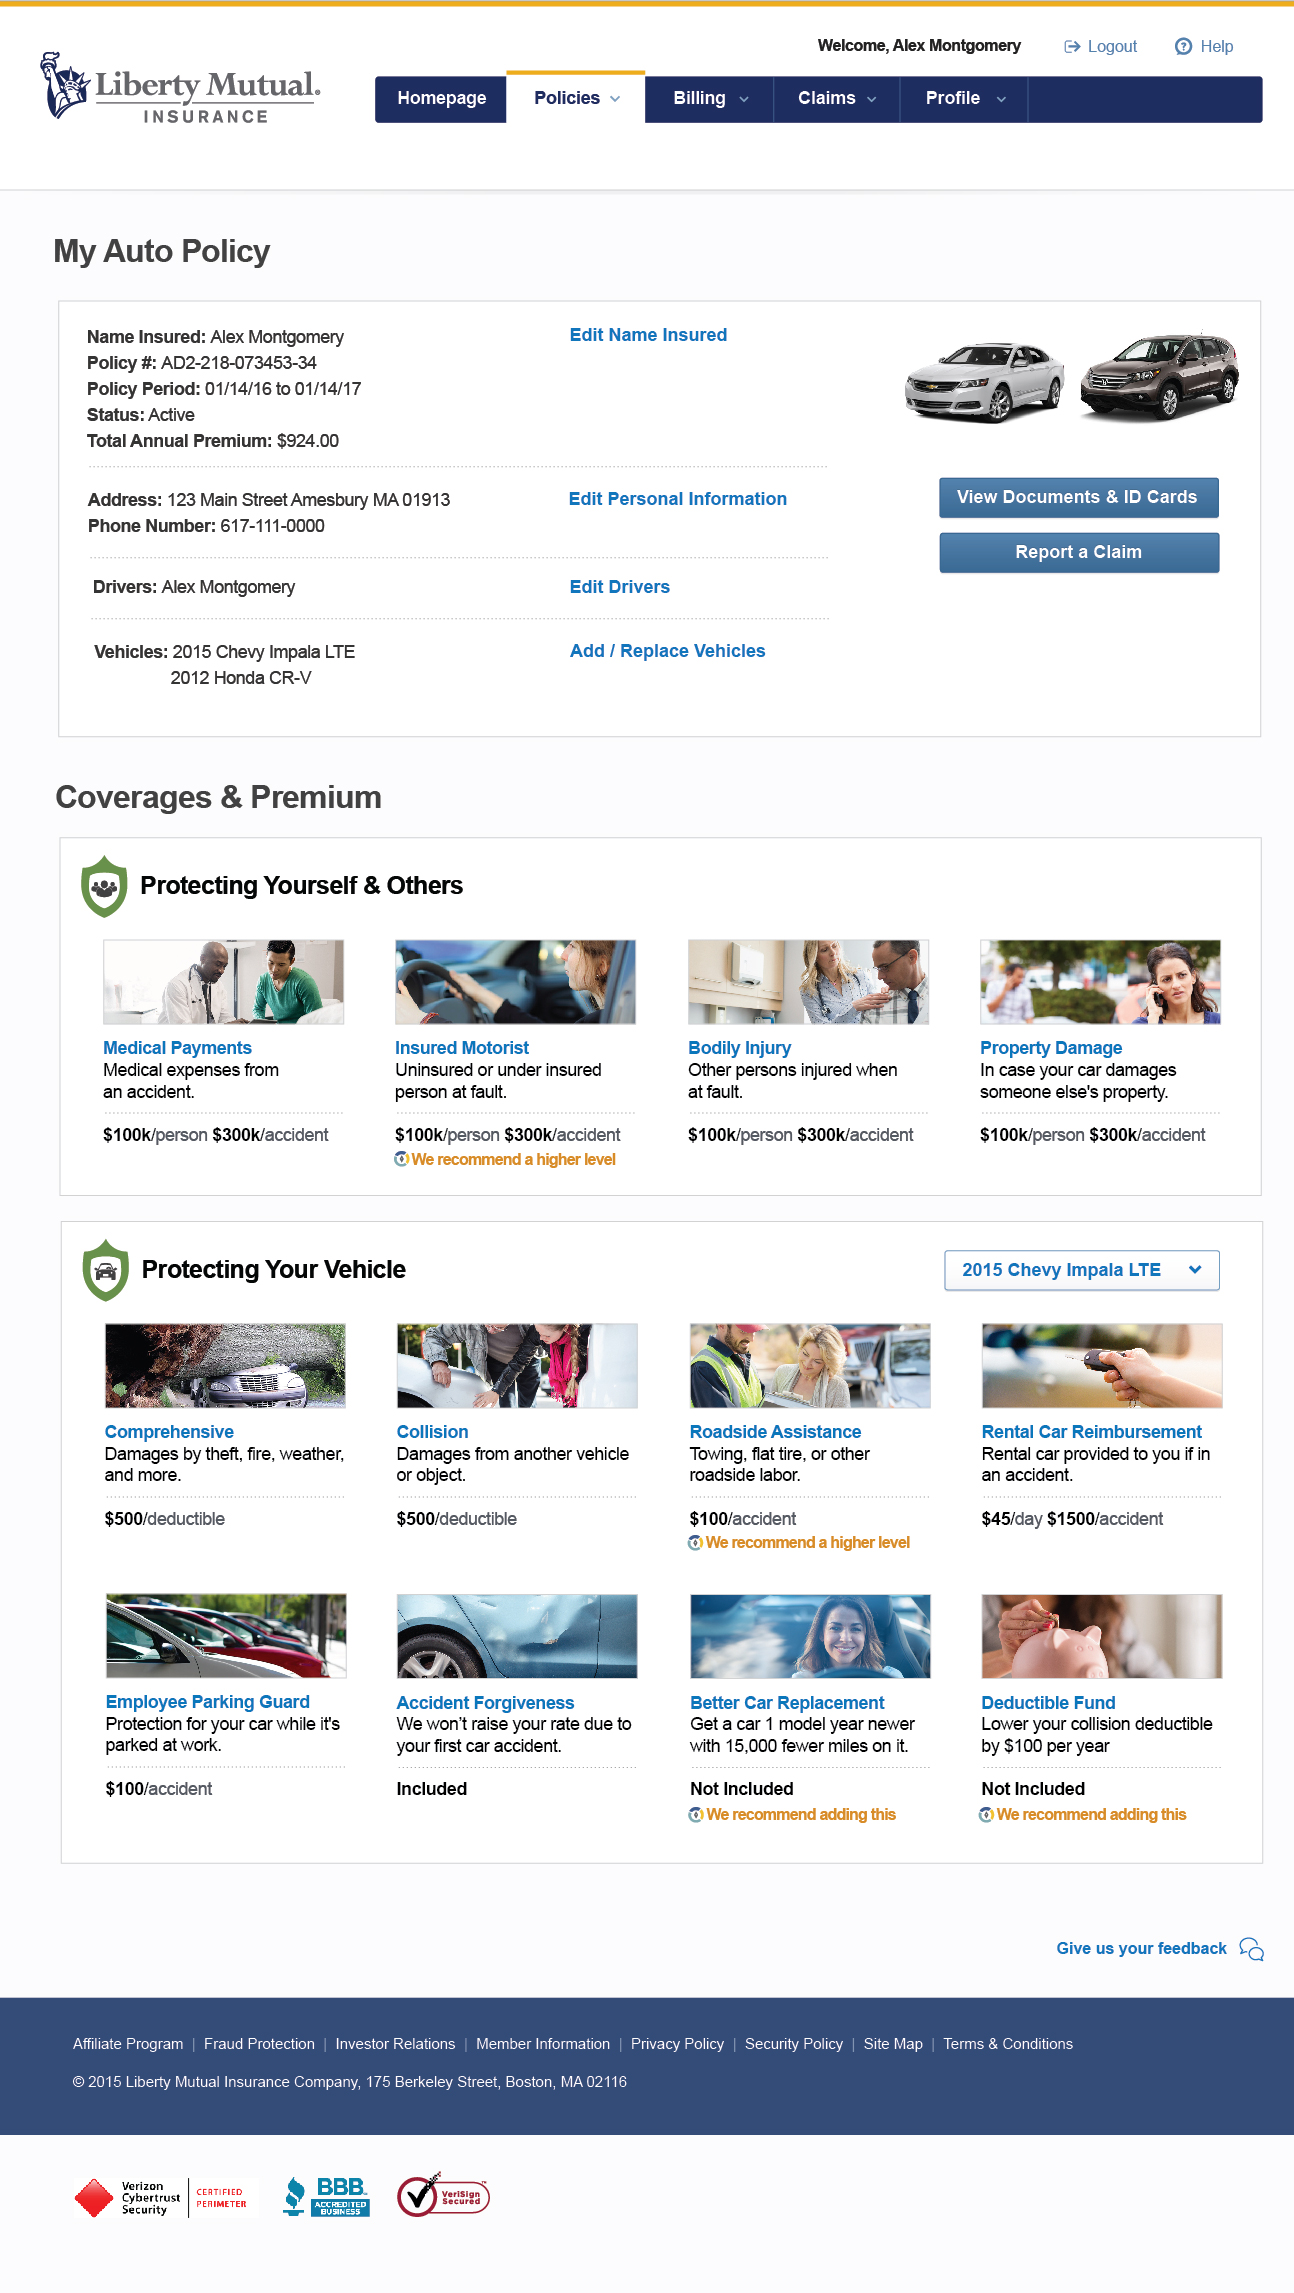 Post Usability - Policy page provides overview information and categorized coverages and recommendations.